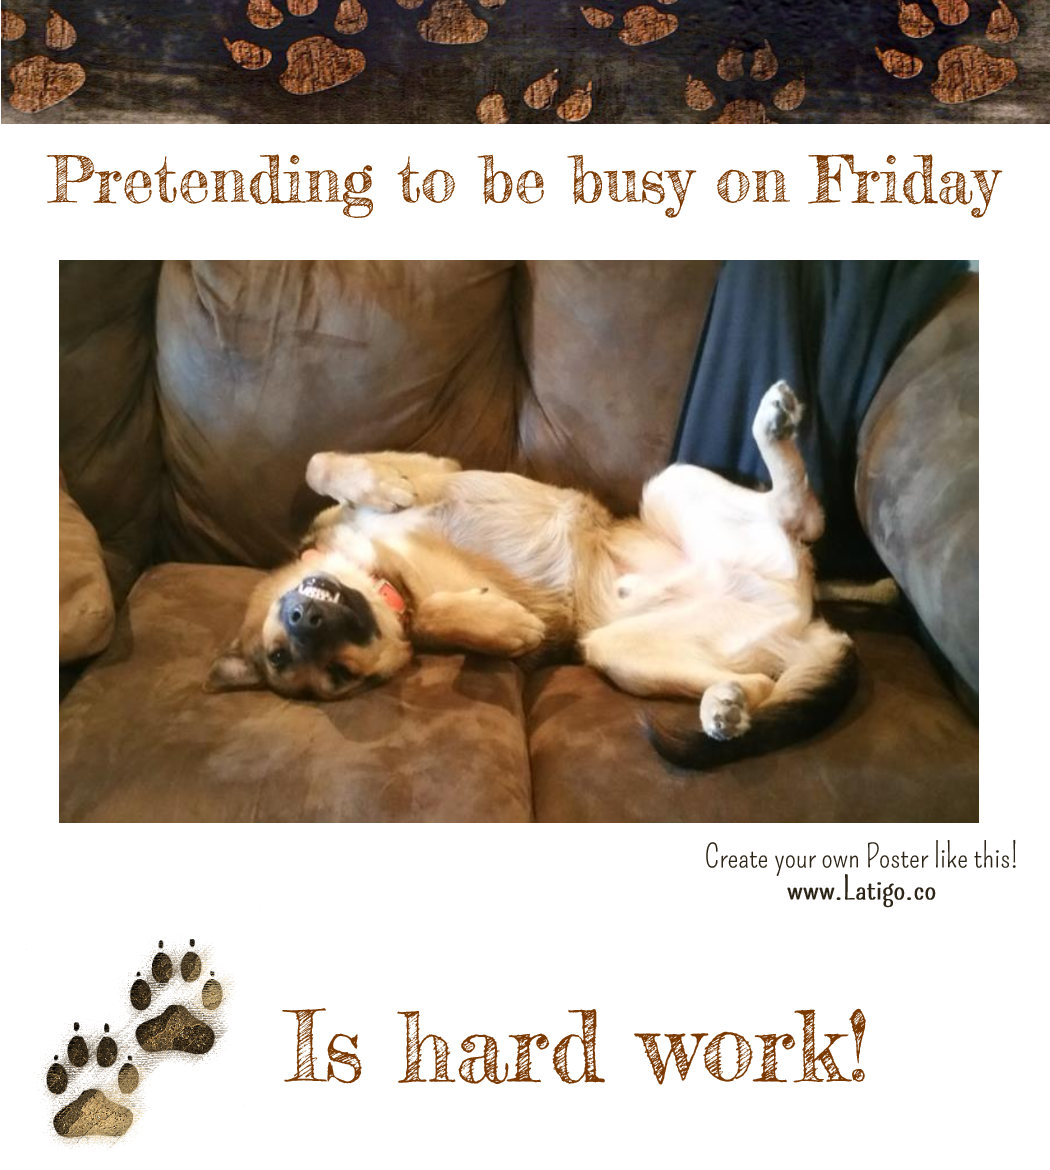 Pretending to be busy on Friday is hard work! Friday Meme